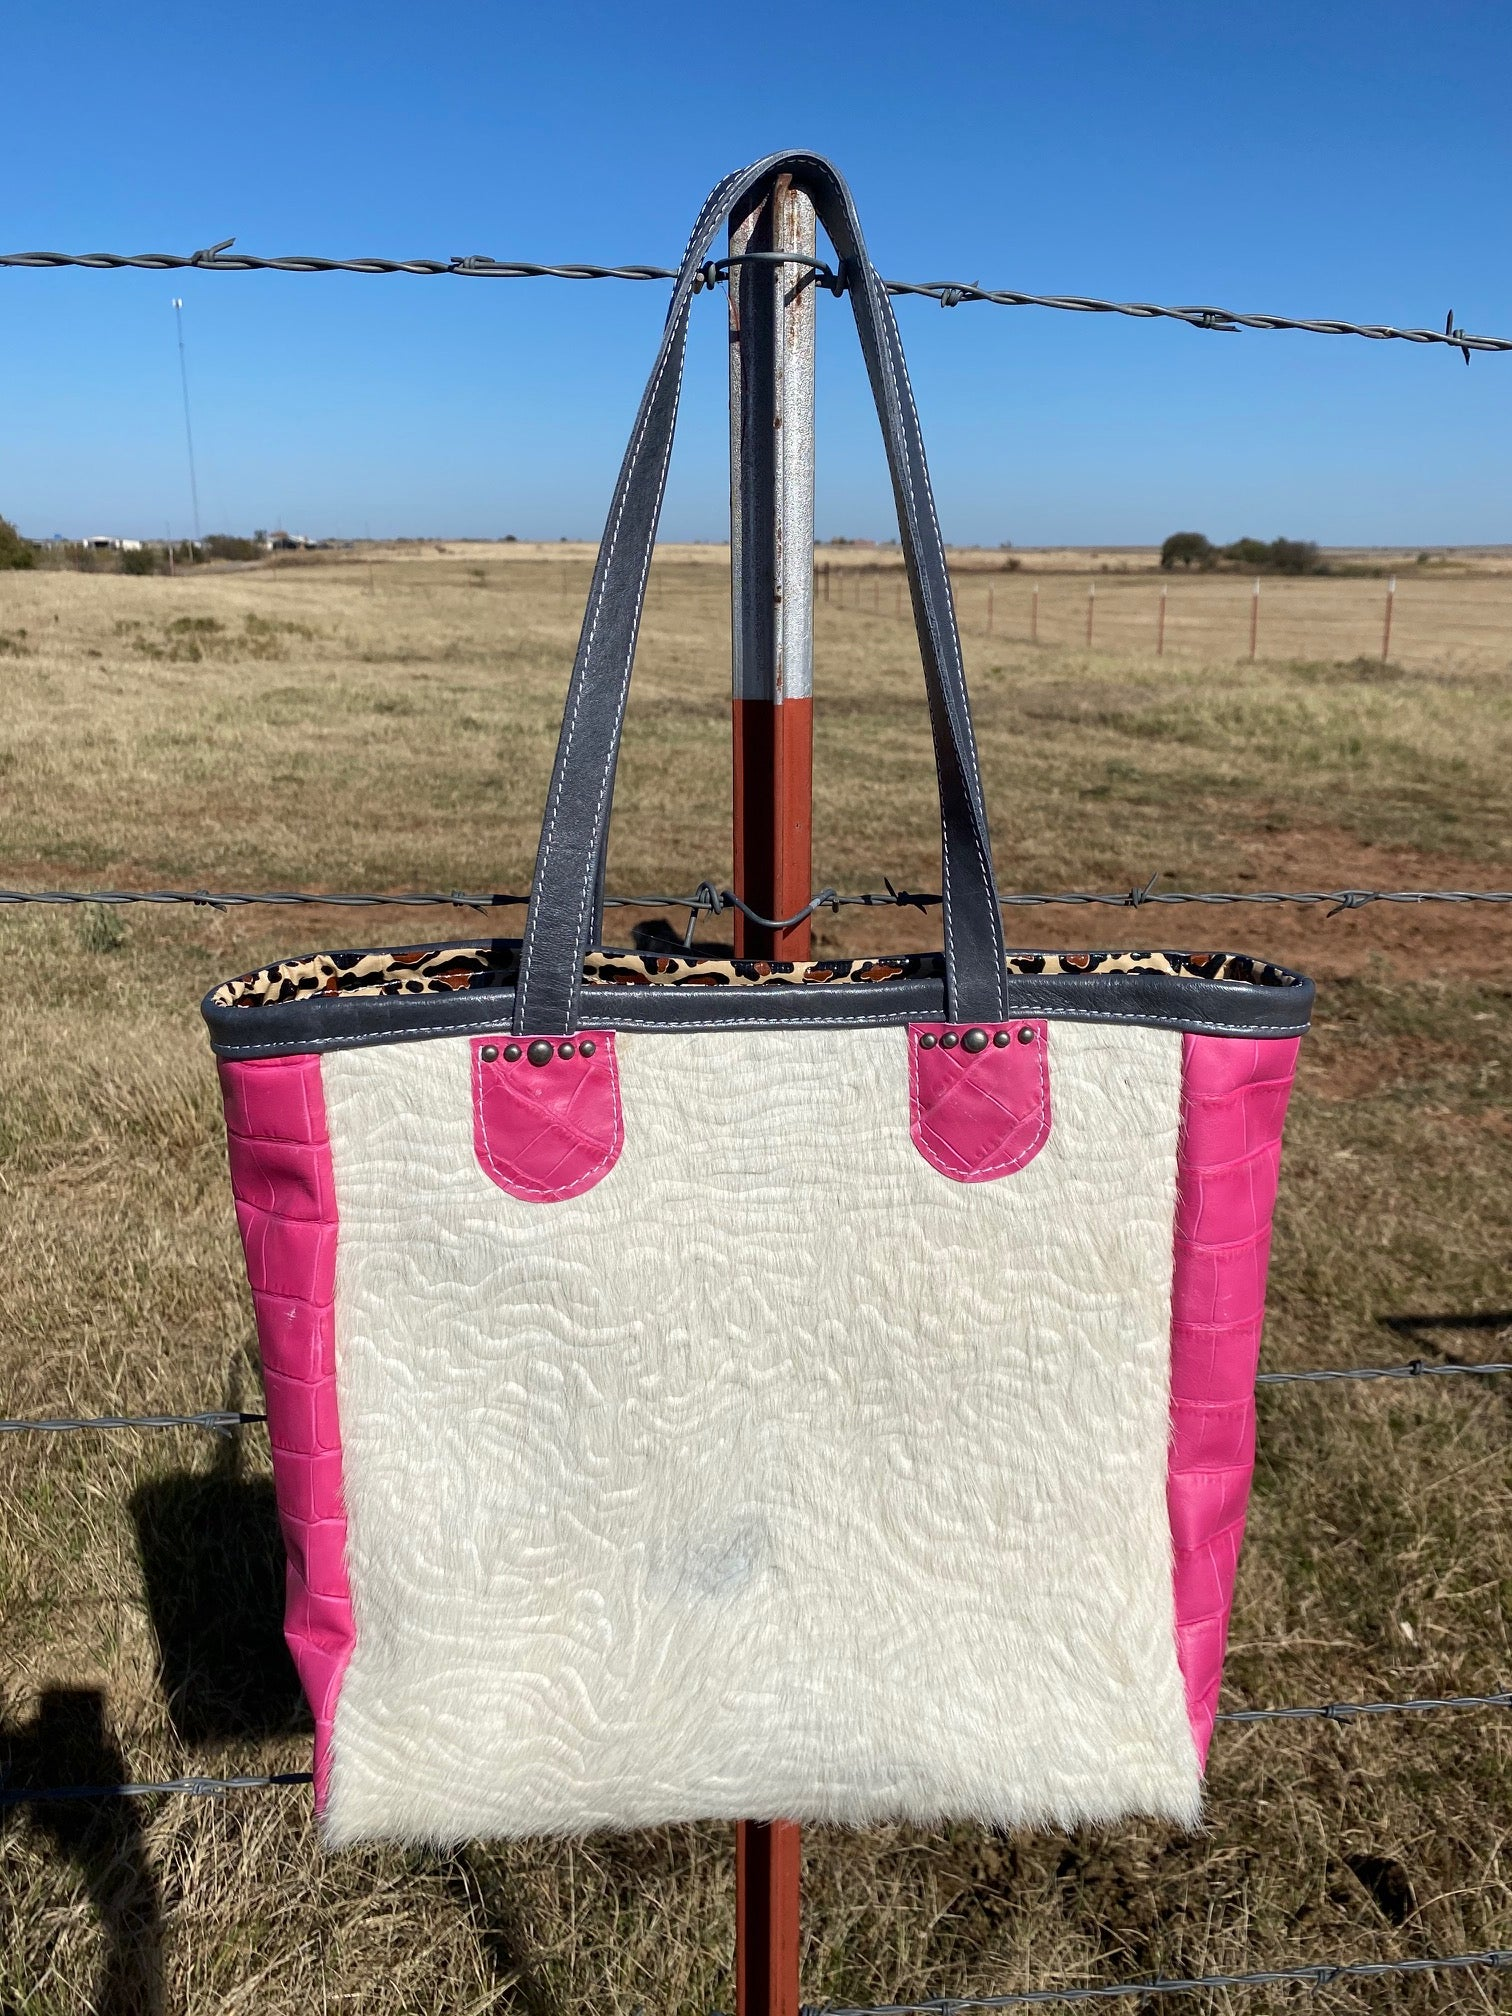 The Barbie Tote Bag